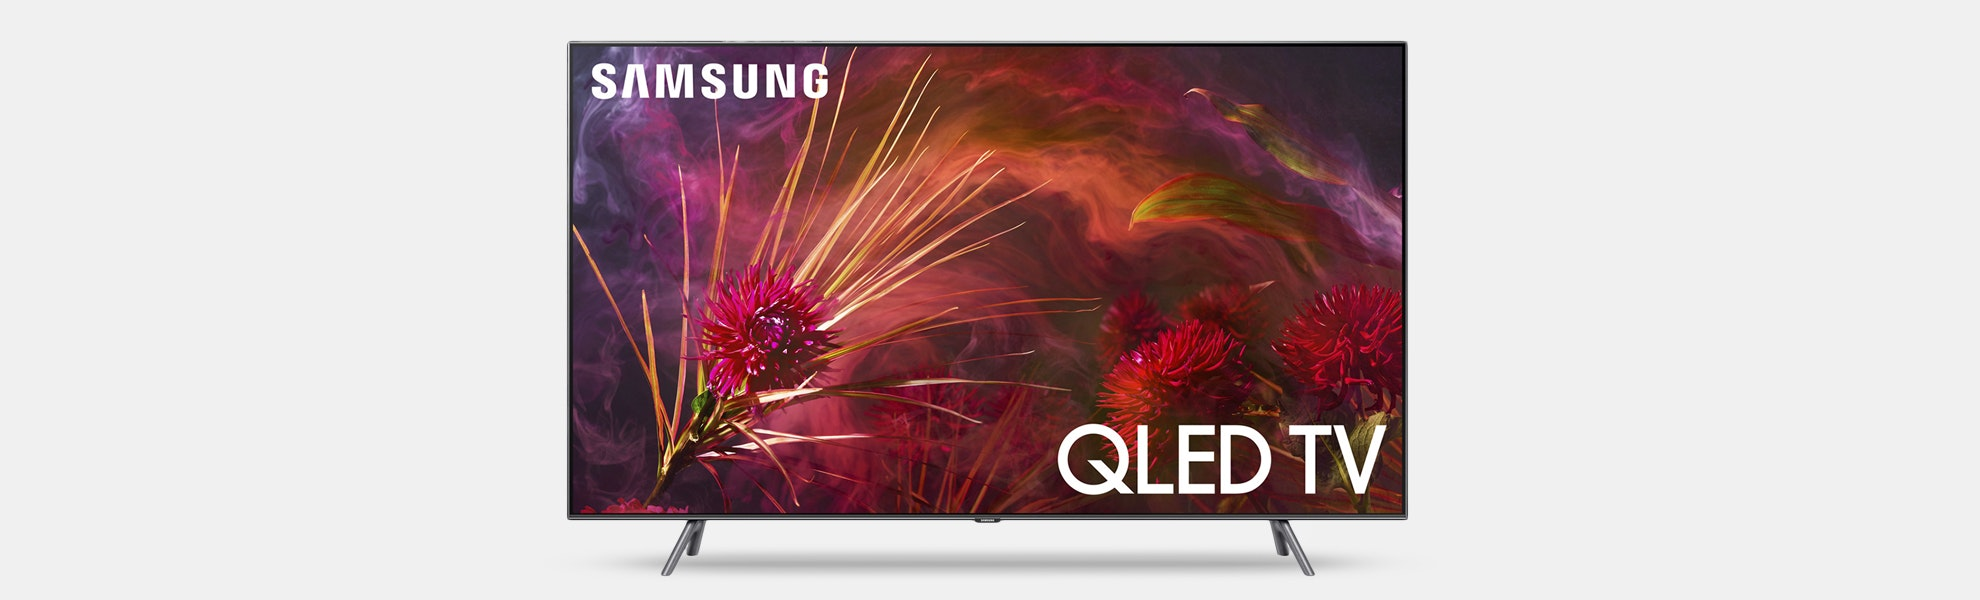 "Samsung 75/82"" Q8FN QLED Smart 4K UHD TV (2018)"